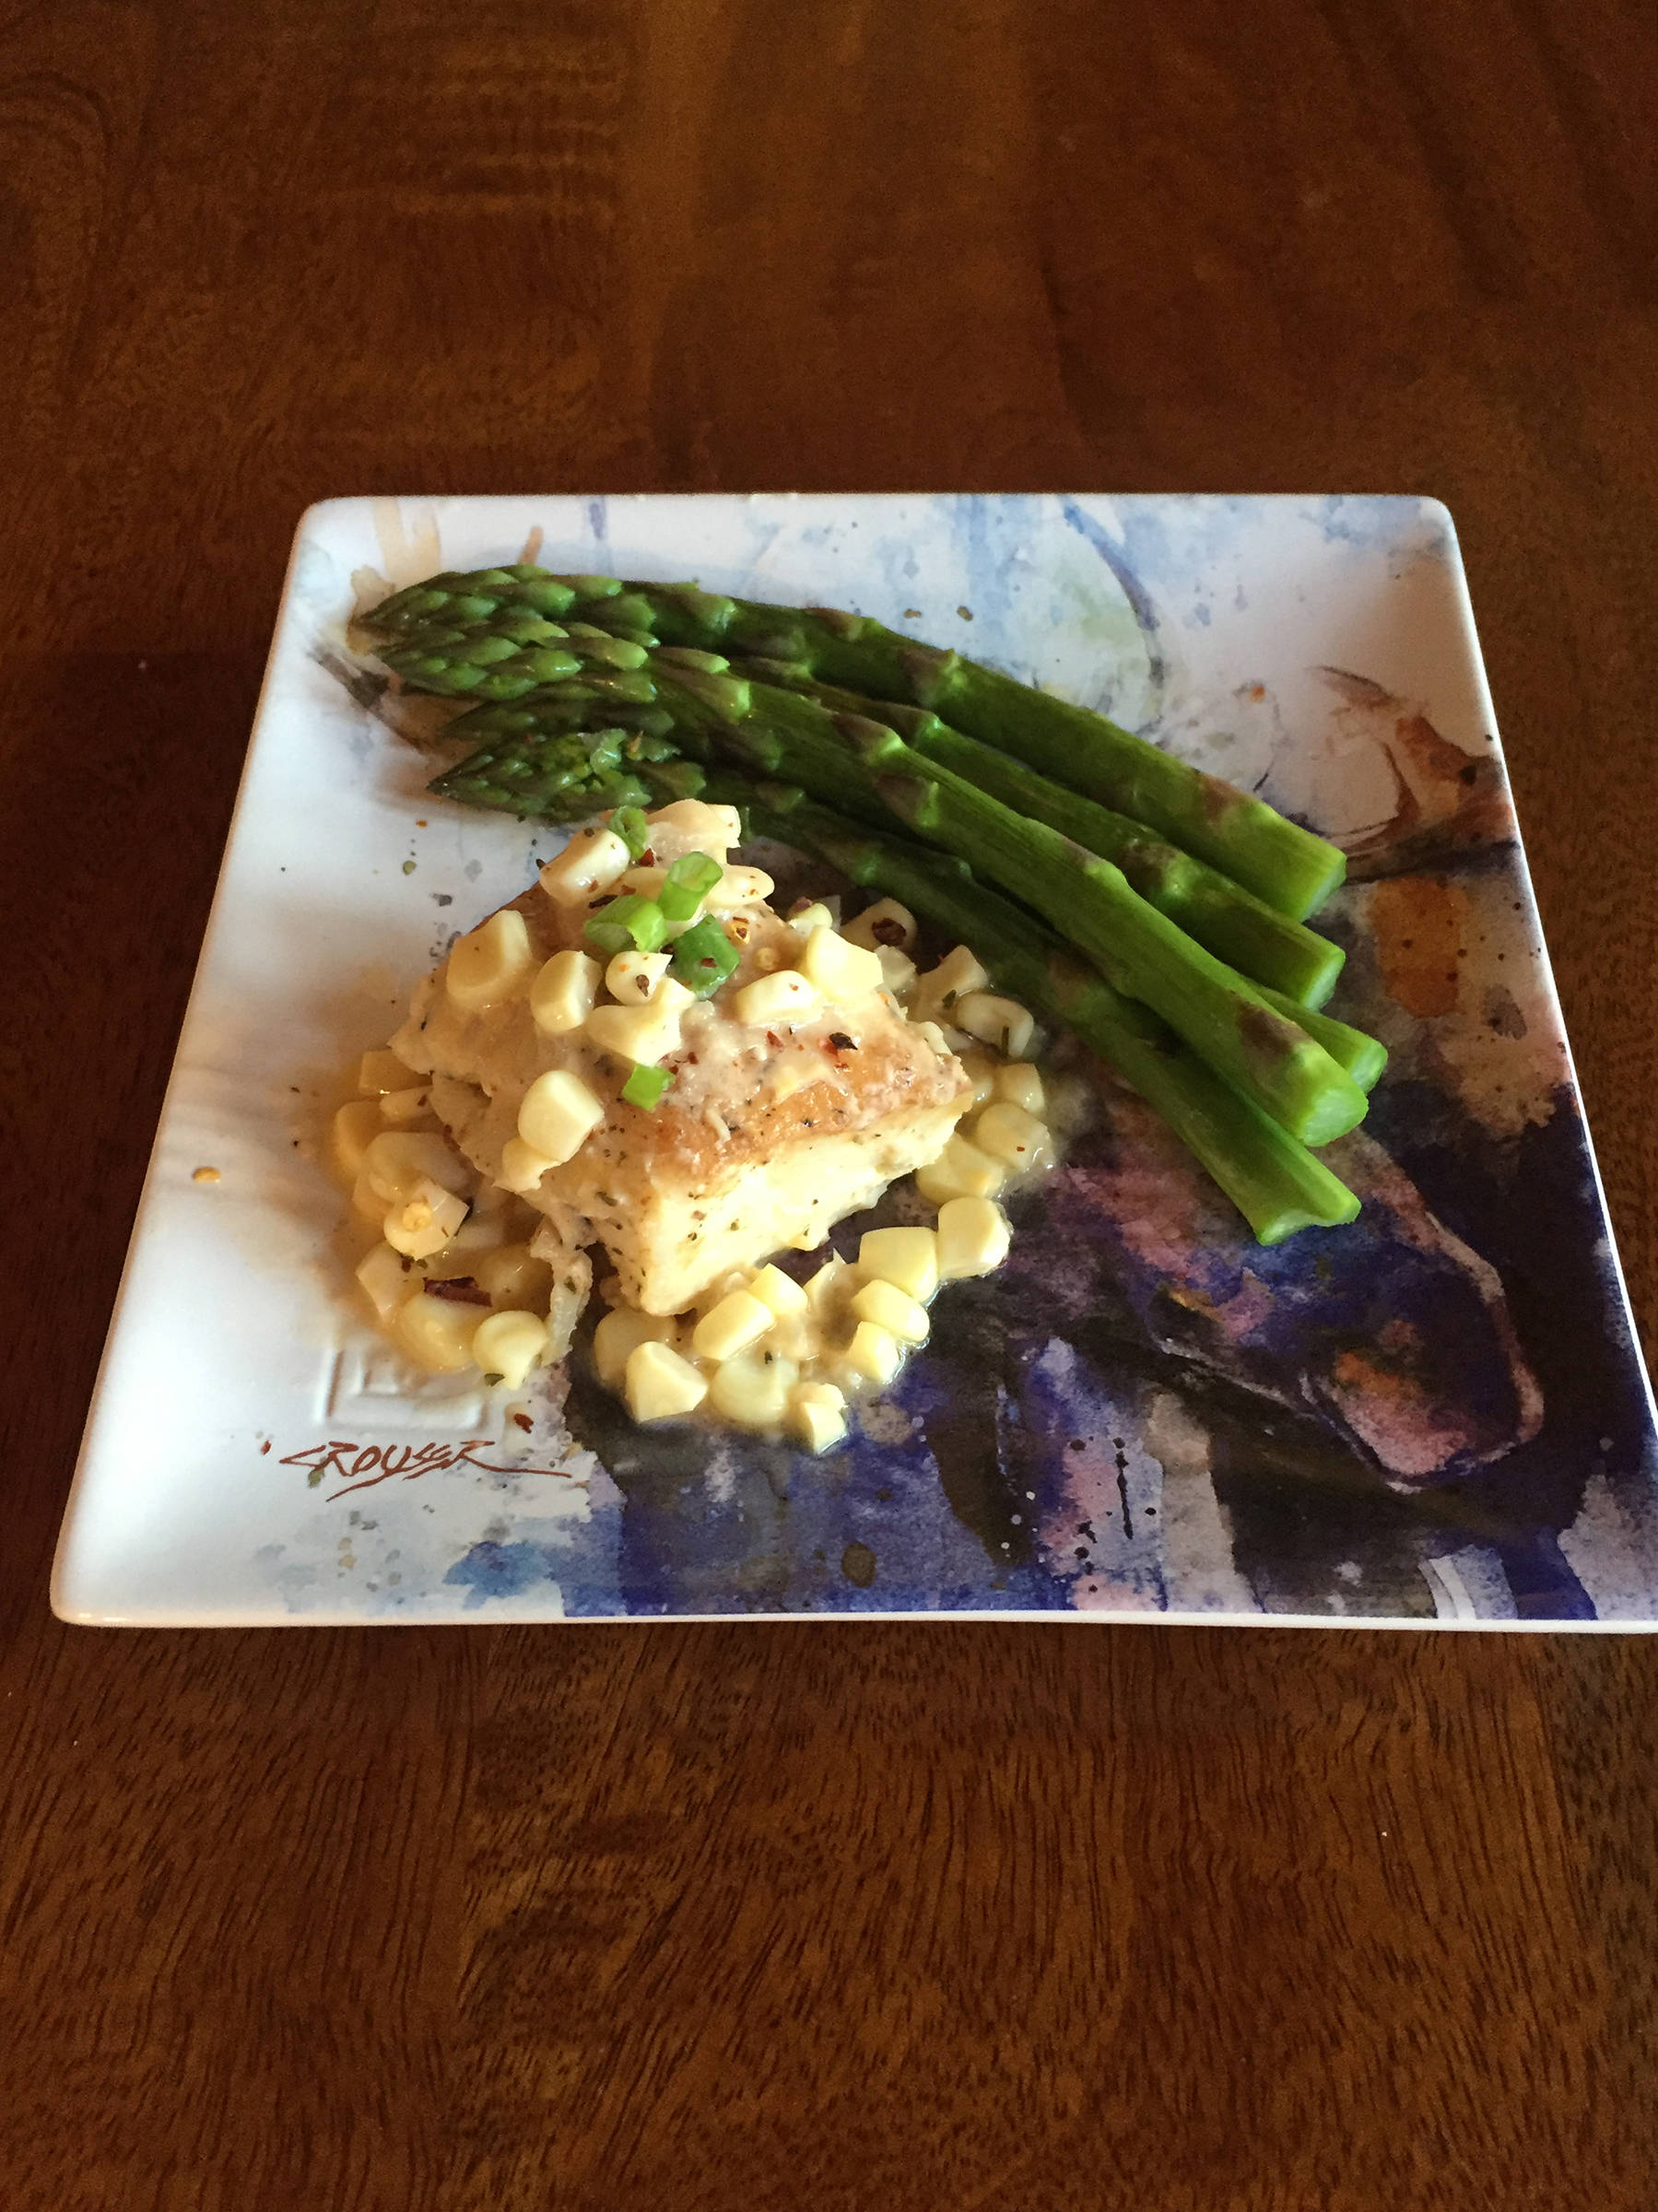 Corn in this recipe of roasted halibut with corn chardonnay butter sauce complements the taste of halibut, as prepared here on June 25, 2019, in Teri Robl's kitchen in Homer, Alaska. (Photo by Teri Robl)